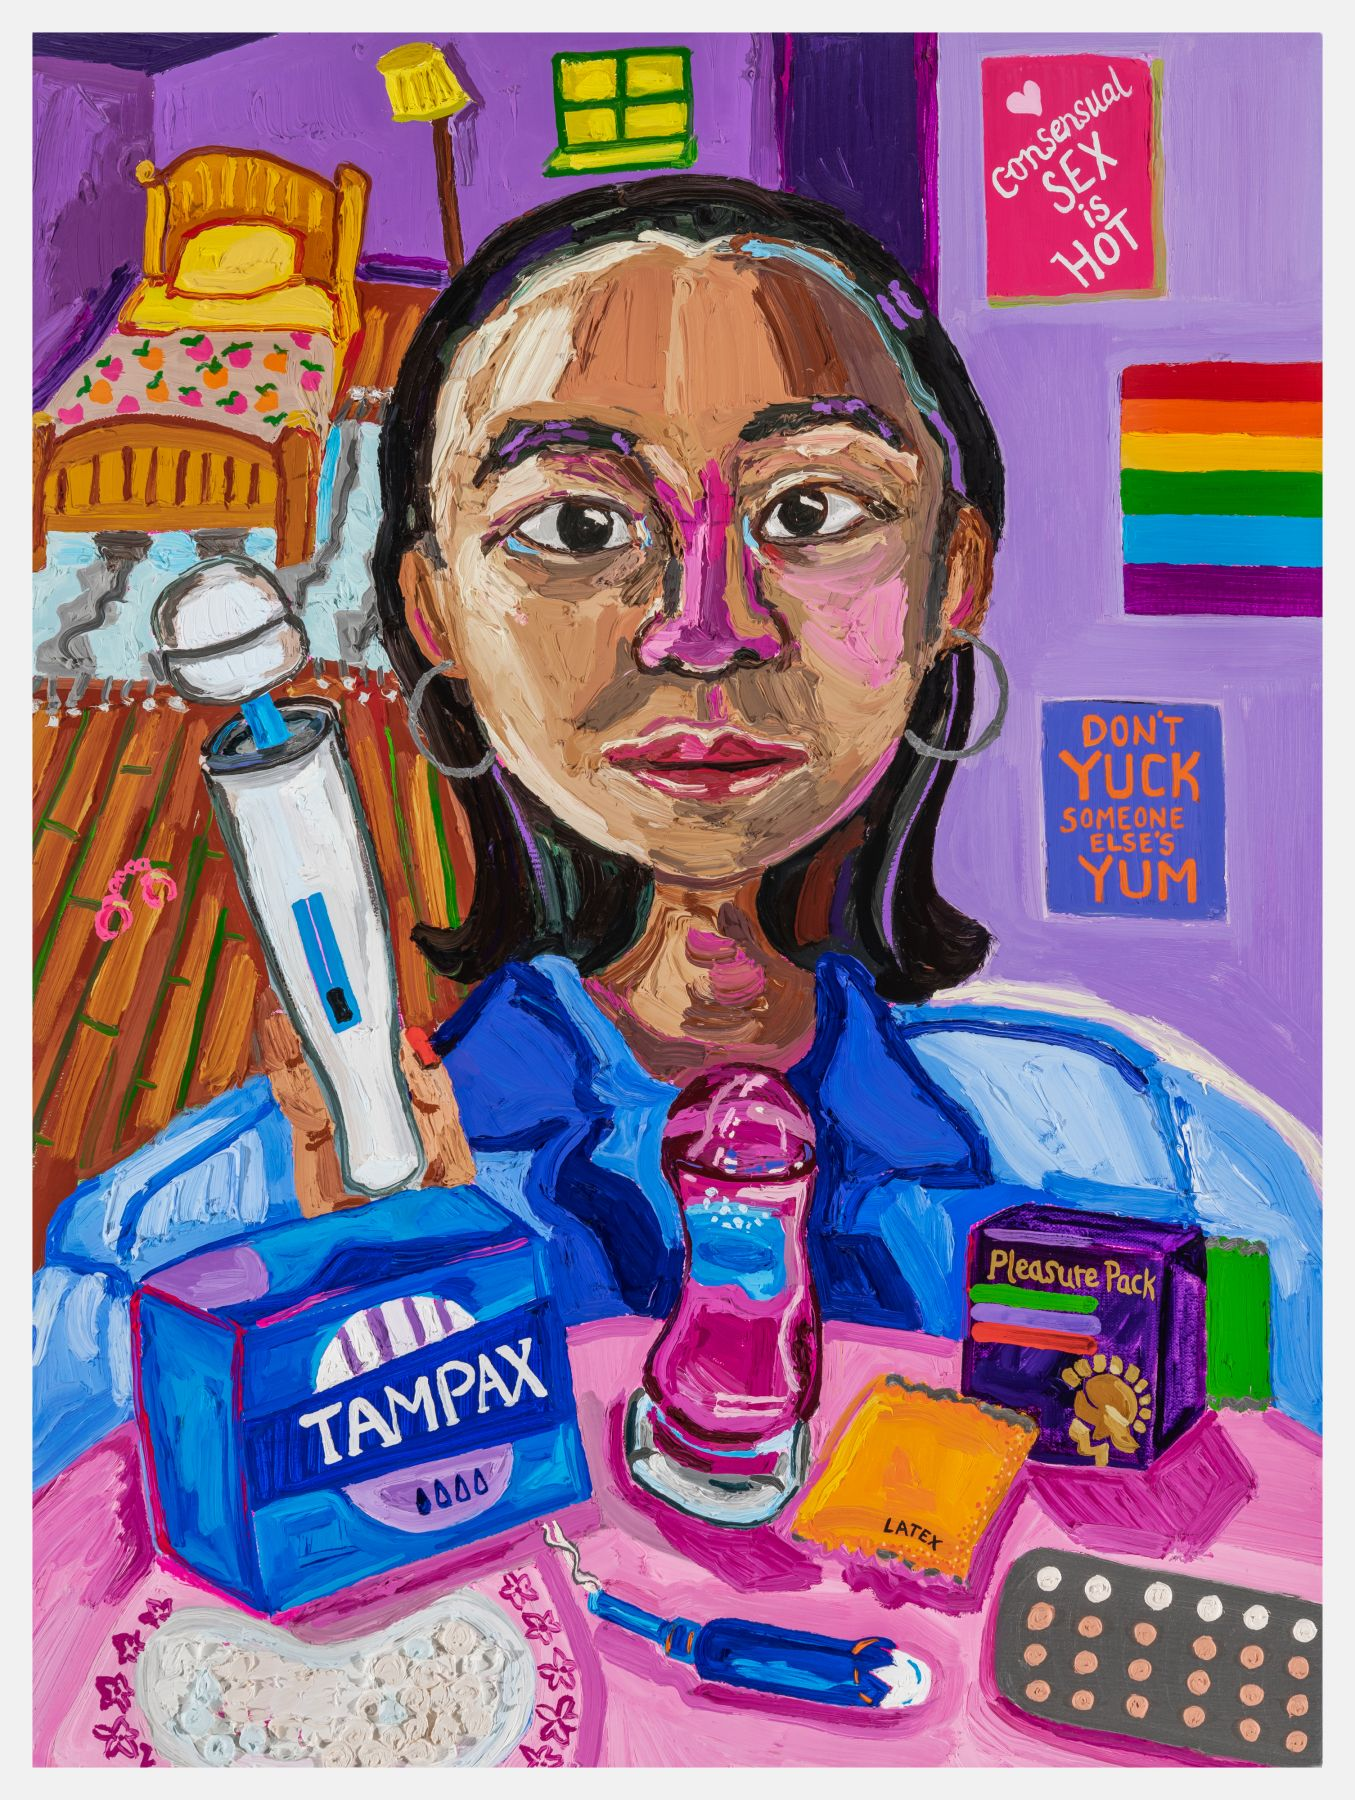 """A box of tampons, condoms, birth control; a vibrator; a dildo; a pregnancy test—all spread on a table before a figure, with medium-length black hair and hoop earrings, painted in portraiture. Behind them, a sign hangs on their wall, """"Don't Yuck Someone Else's Yum."""""""